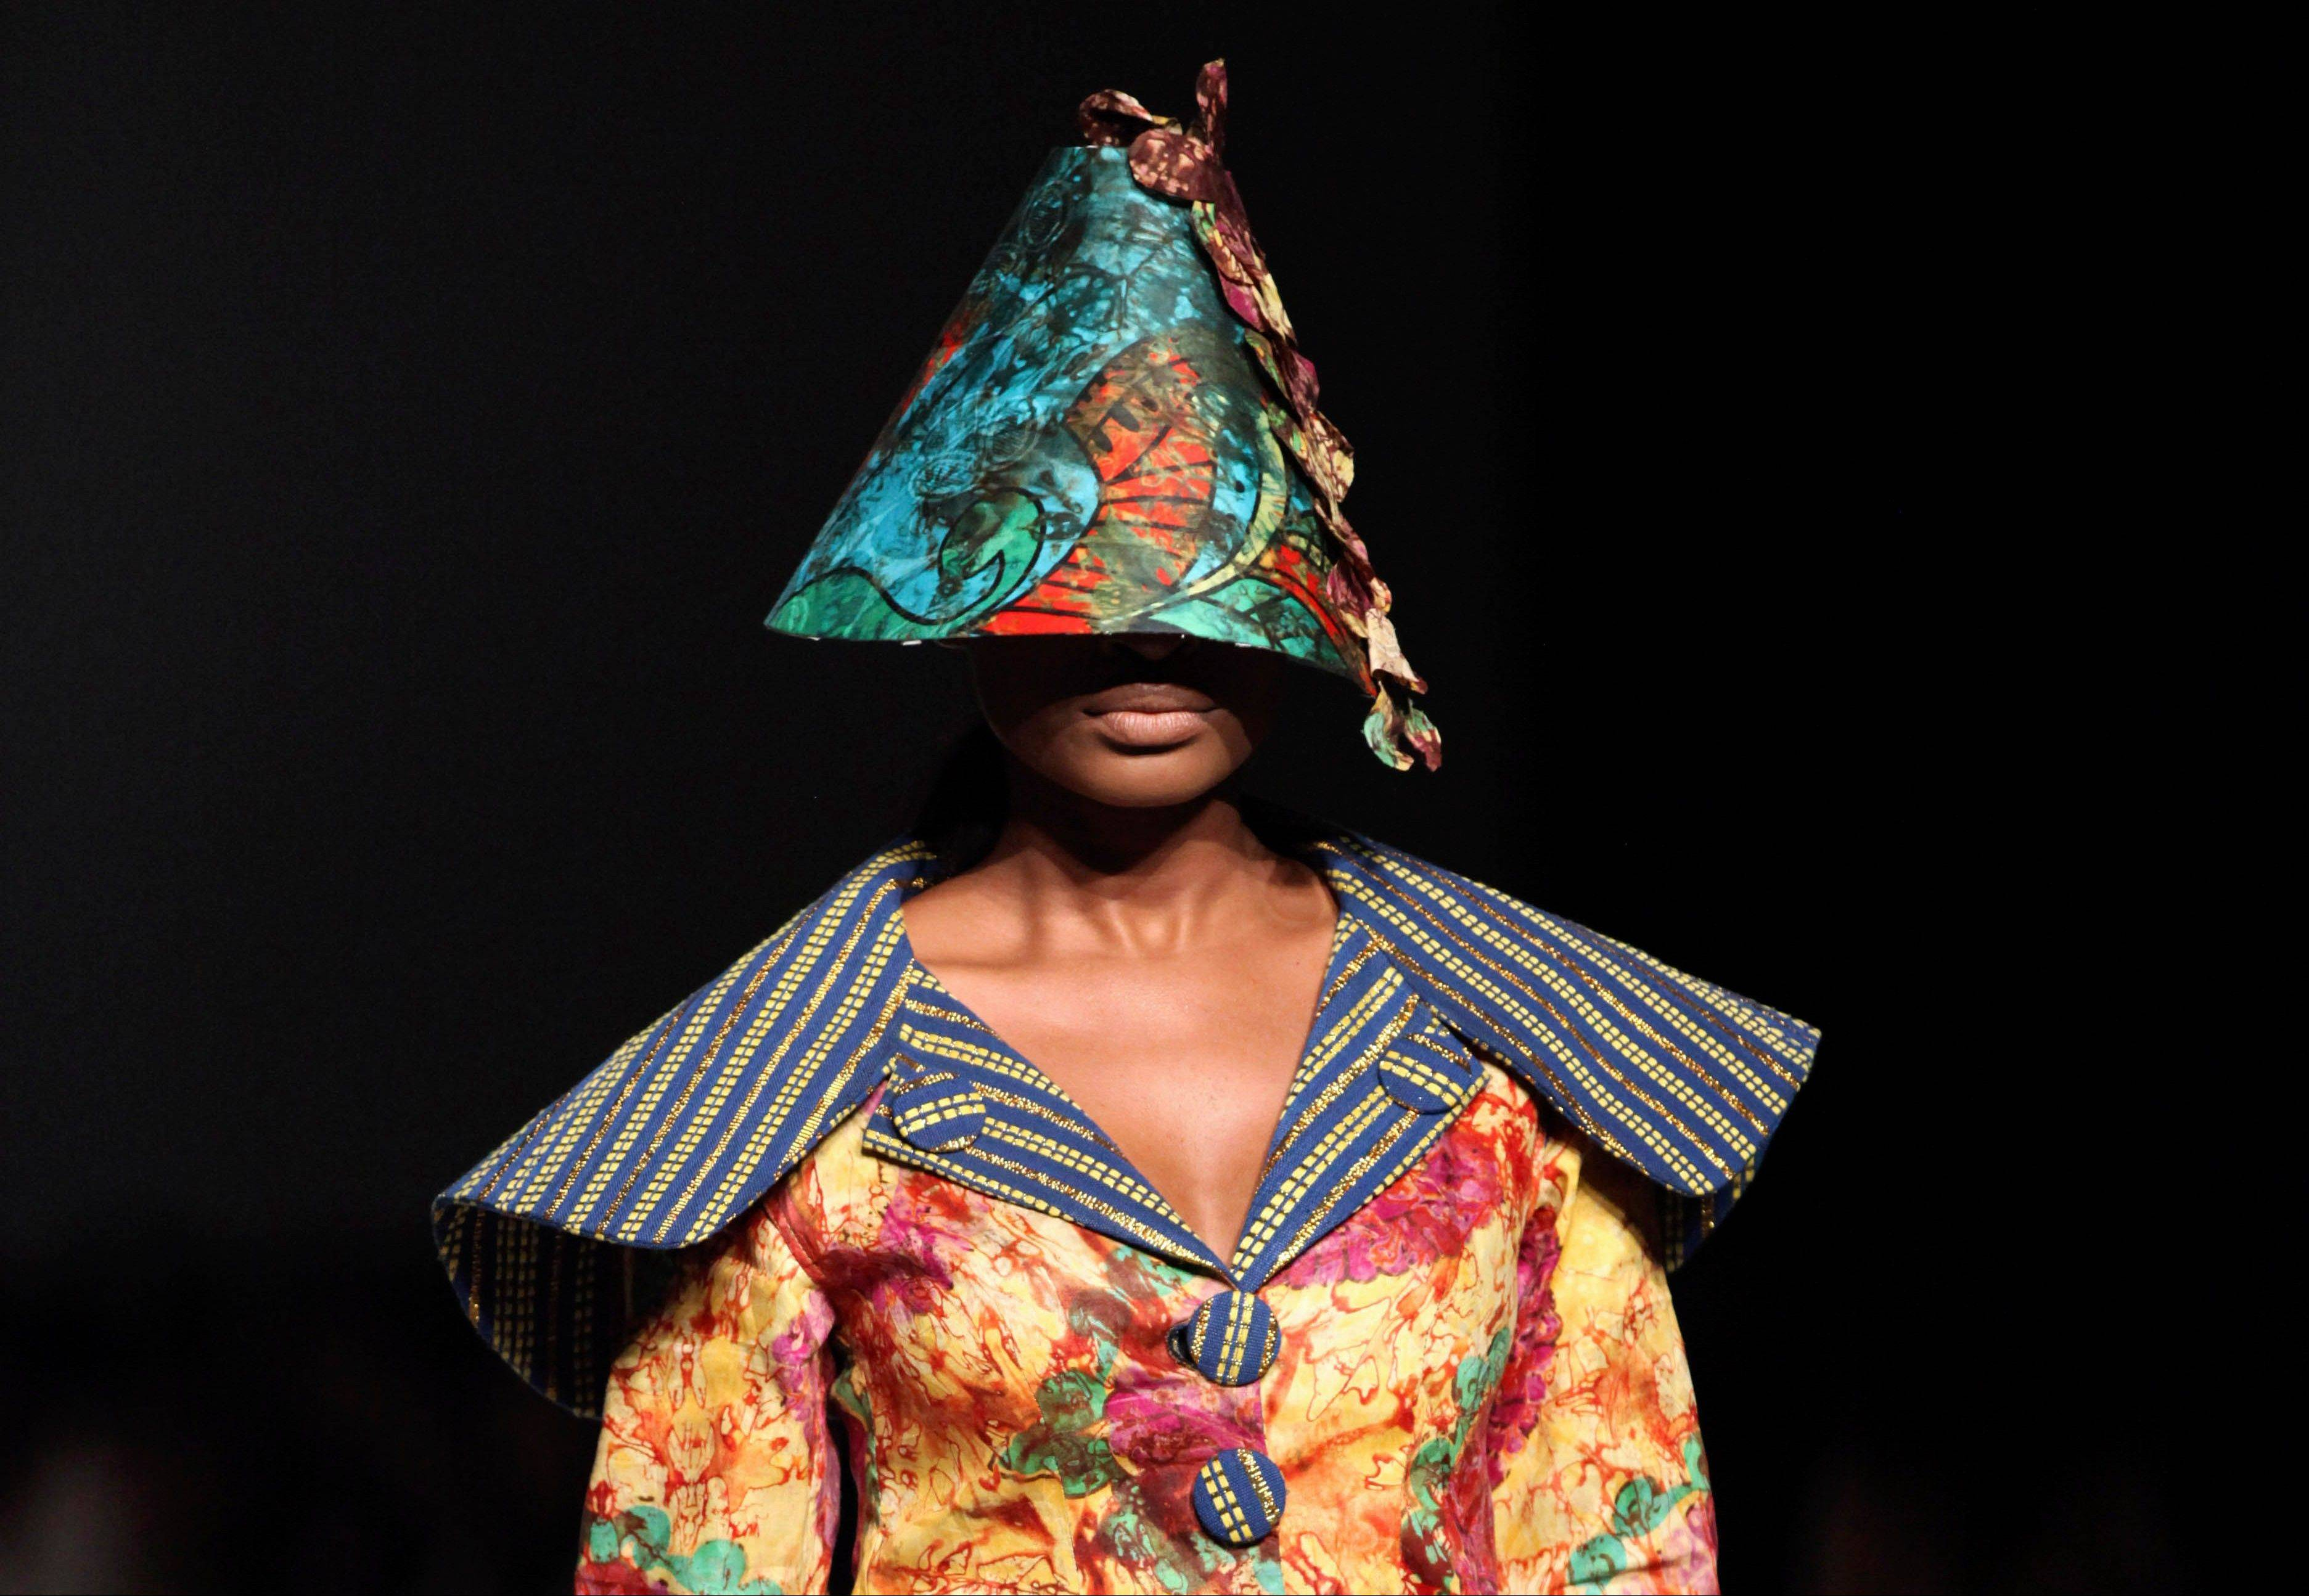 A model displays a creation by designer Weizdhurm Franklyn, during the MTN Fashion and Design Week in Lagos, Nigeria, Saturday, Oct. 27, 2012.